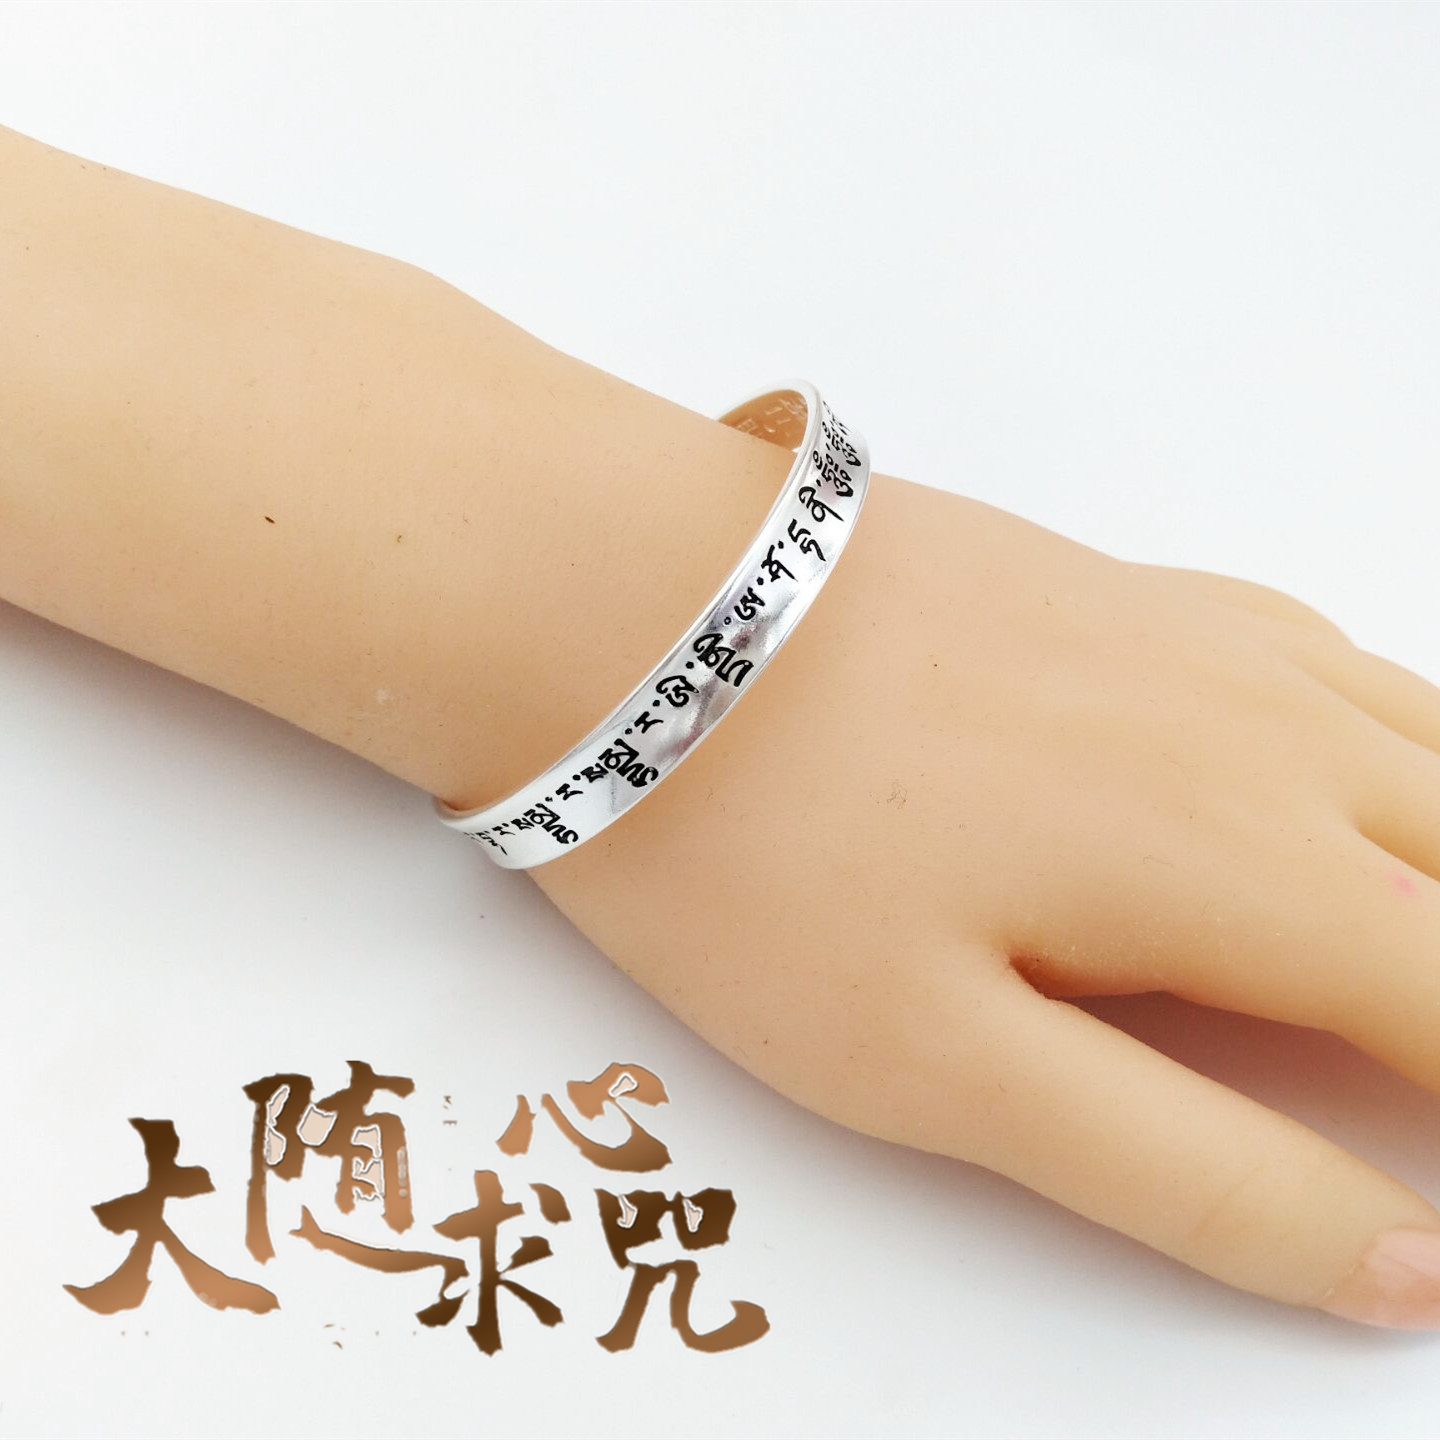 Big with the pursuit of silver bracelet to attract and transport lovers six character truth Heart Sutra 999 national bracelet to send mother health and auspiciousness